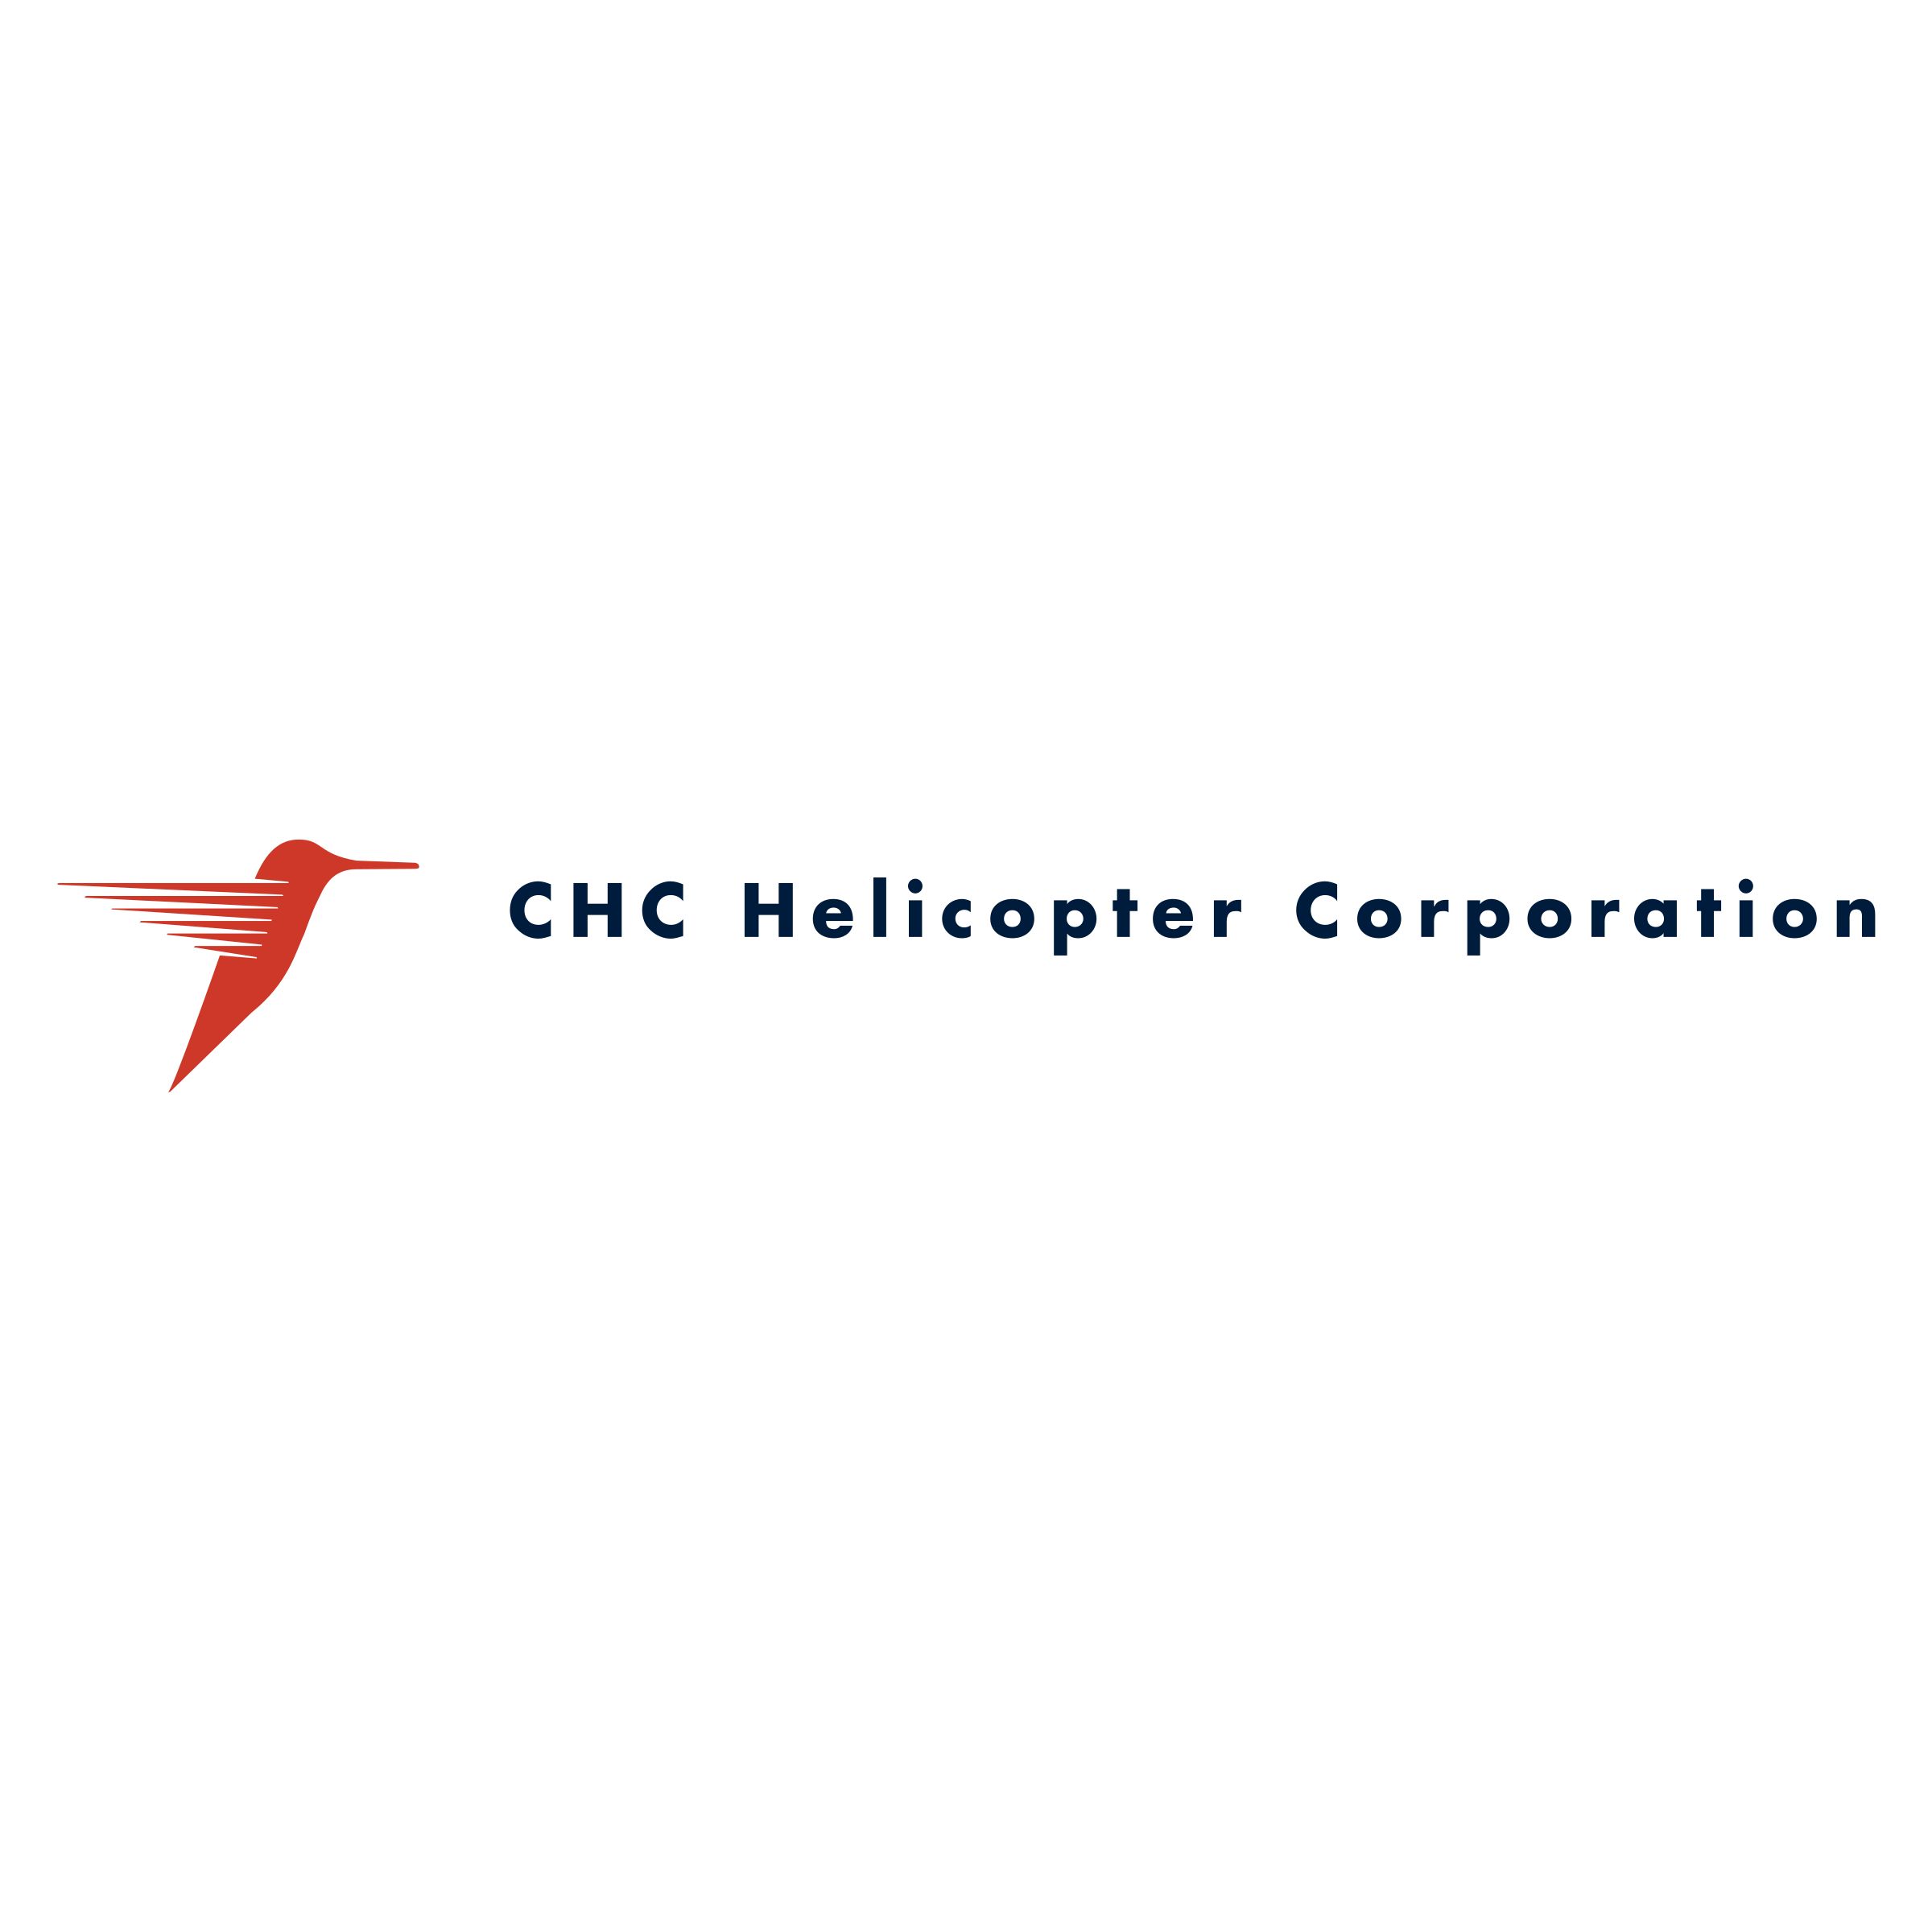 chc helicopter logo png transparent svg vector freebie supply